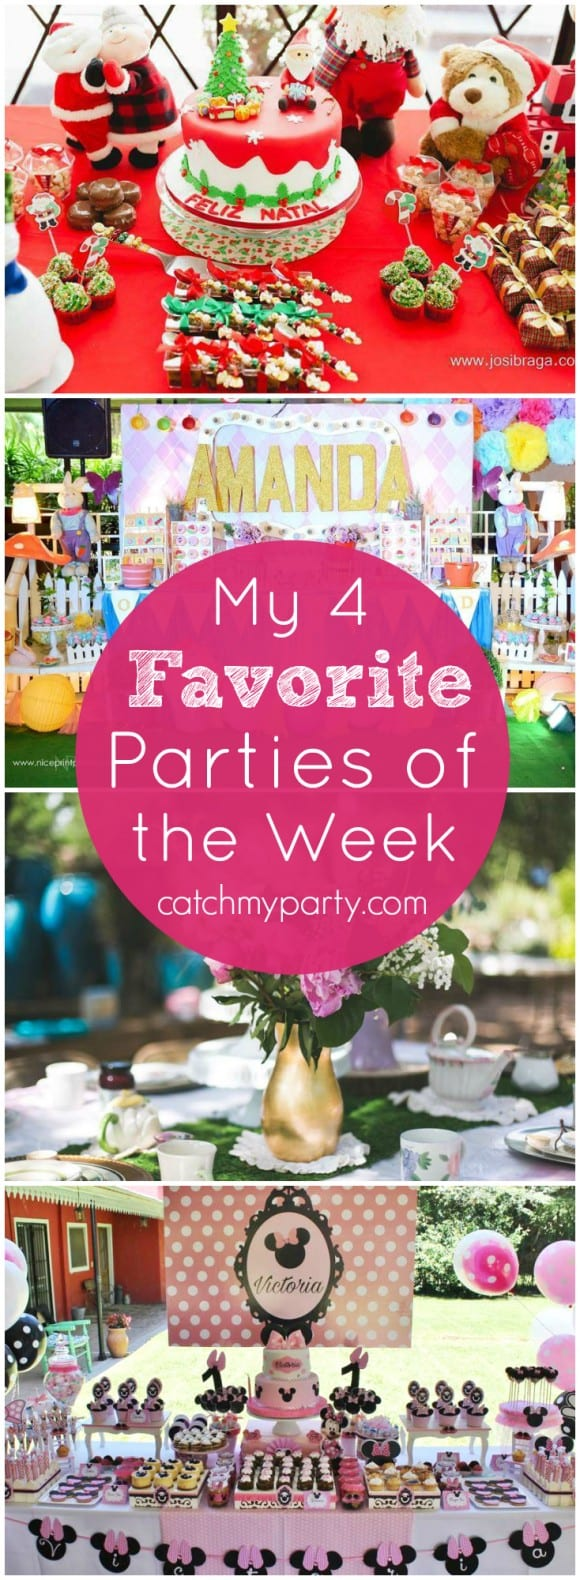 My favorite parties this week include Christmas in a Castle, an Alice in Wonderland Party, a Fairy Party, and a Minnie Mouse party! | CatchMyParty.com